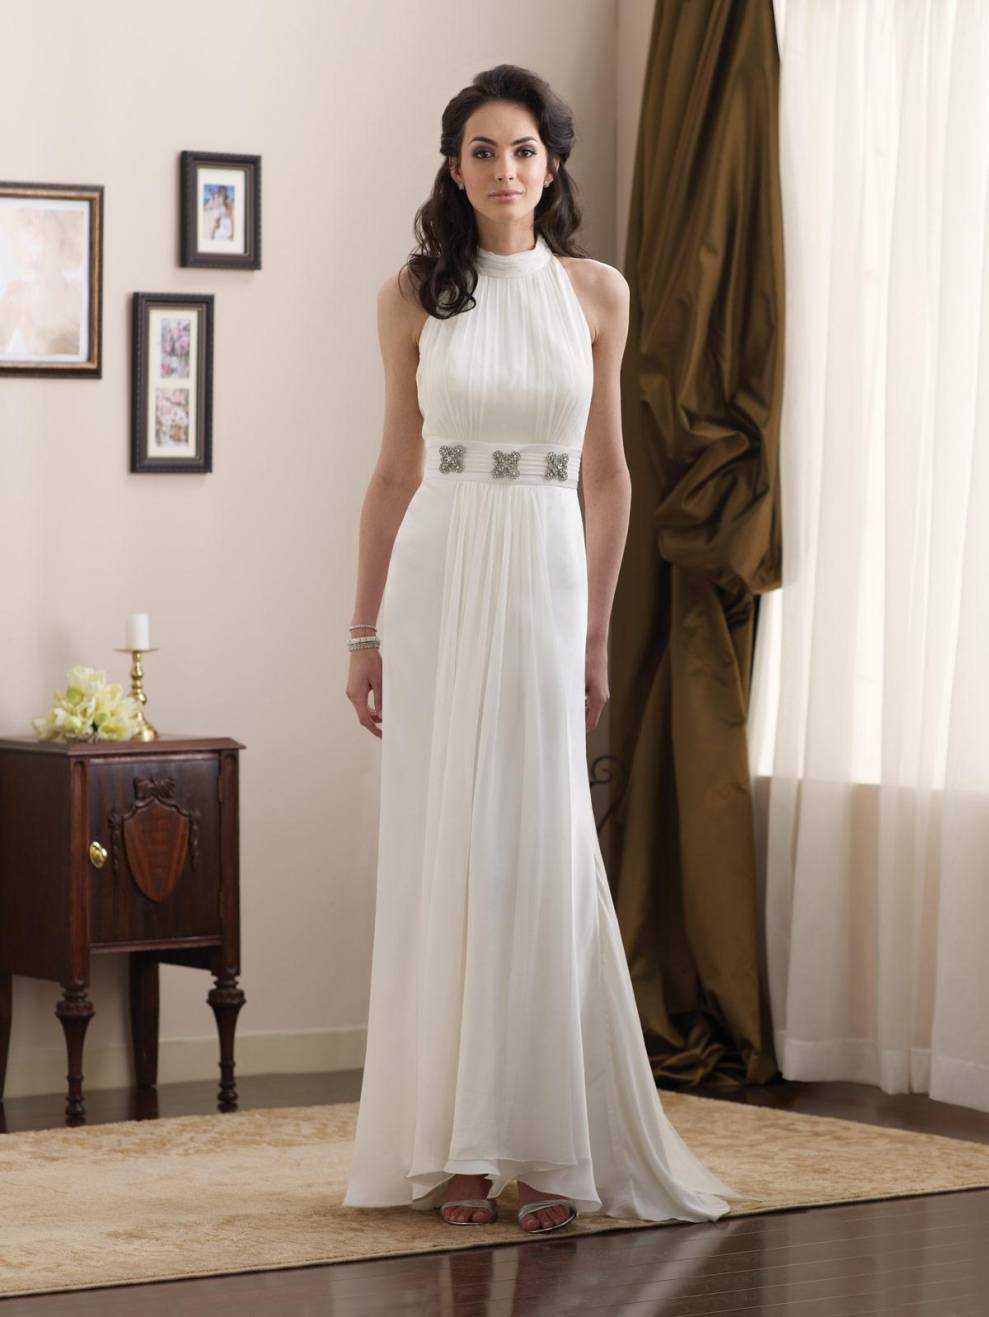 Simple High Halter Jeweled Broach Chiffon Informal Wedding. Oscar De La Renta Wedding Dress Hire. Cheap Wedding Dresses Hull. Winter Wedding Dresses Sleeves. Elegant Plus Size Wedding Guest Dresses. Winter Wedding Dresses Knee Length. Blush Wedding Dress Wtoo 2013. Black Wedding Dress Bride By Design. Twilight Wedding Bridesmaid Dresses